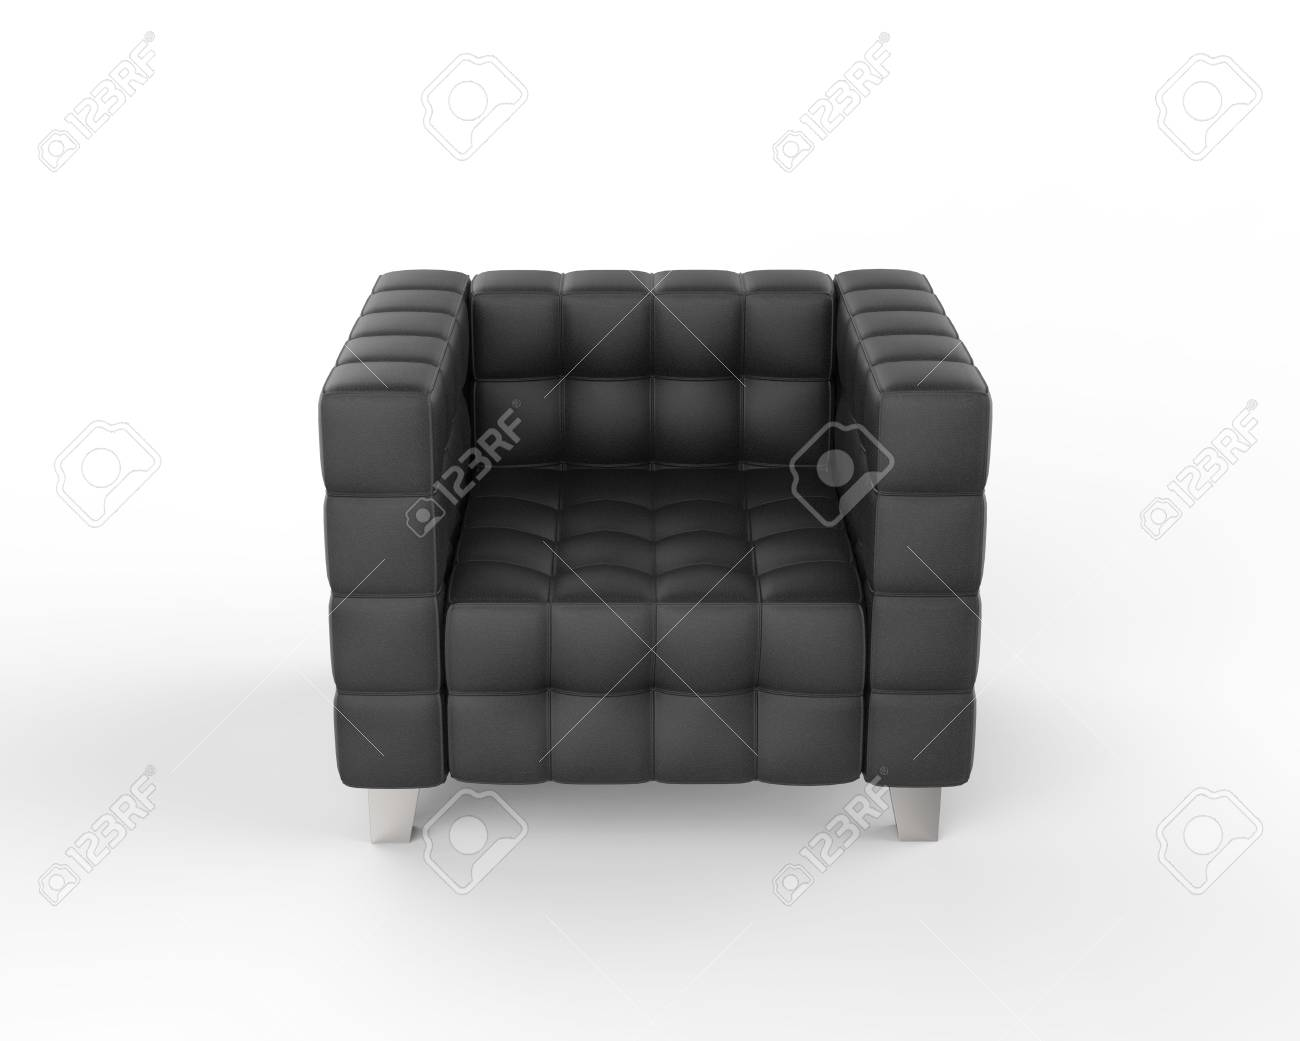 Black Leather Armchair On White Background, Front View. Stock Photo    44860272